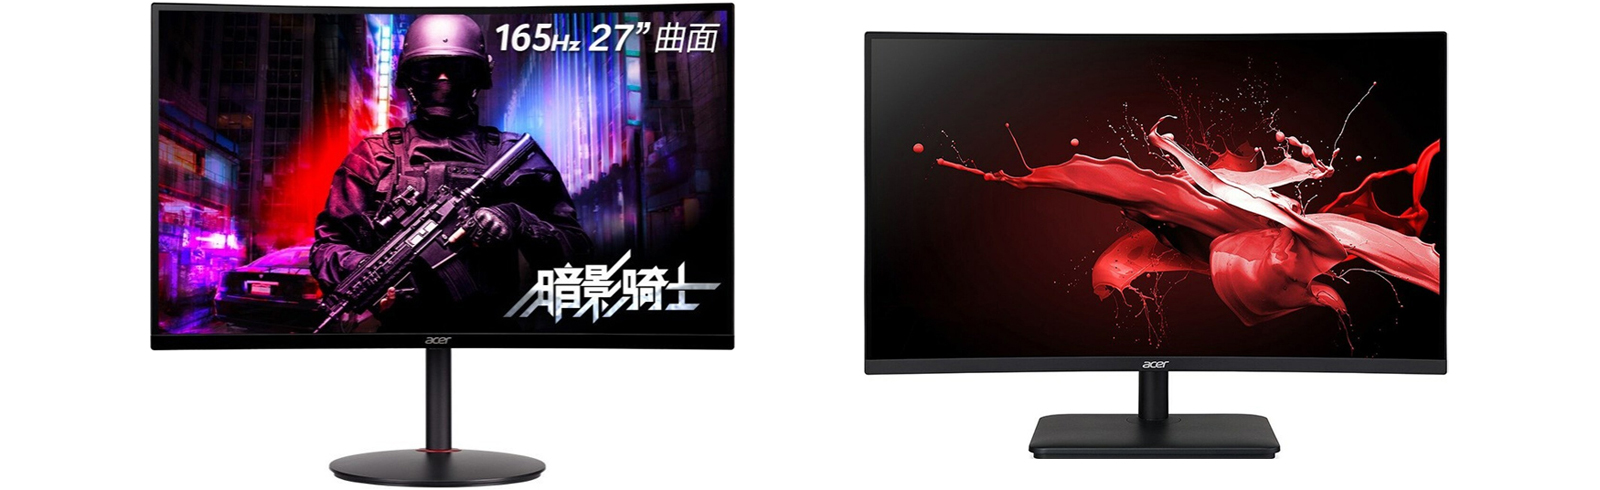 """Acer XZ270UP and Acer ED270UP go on sale with 27"""" curved QHD VA panels and 165Hz refresh rate"""